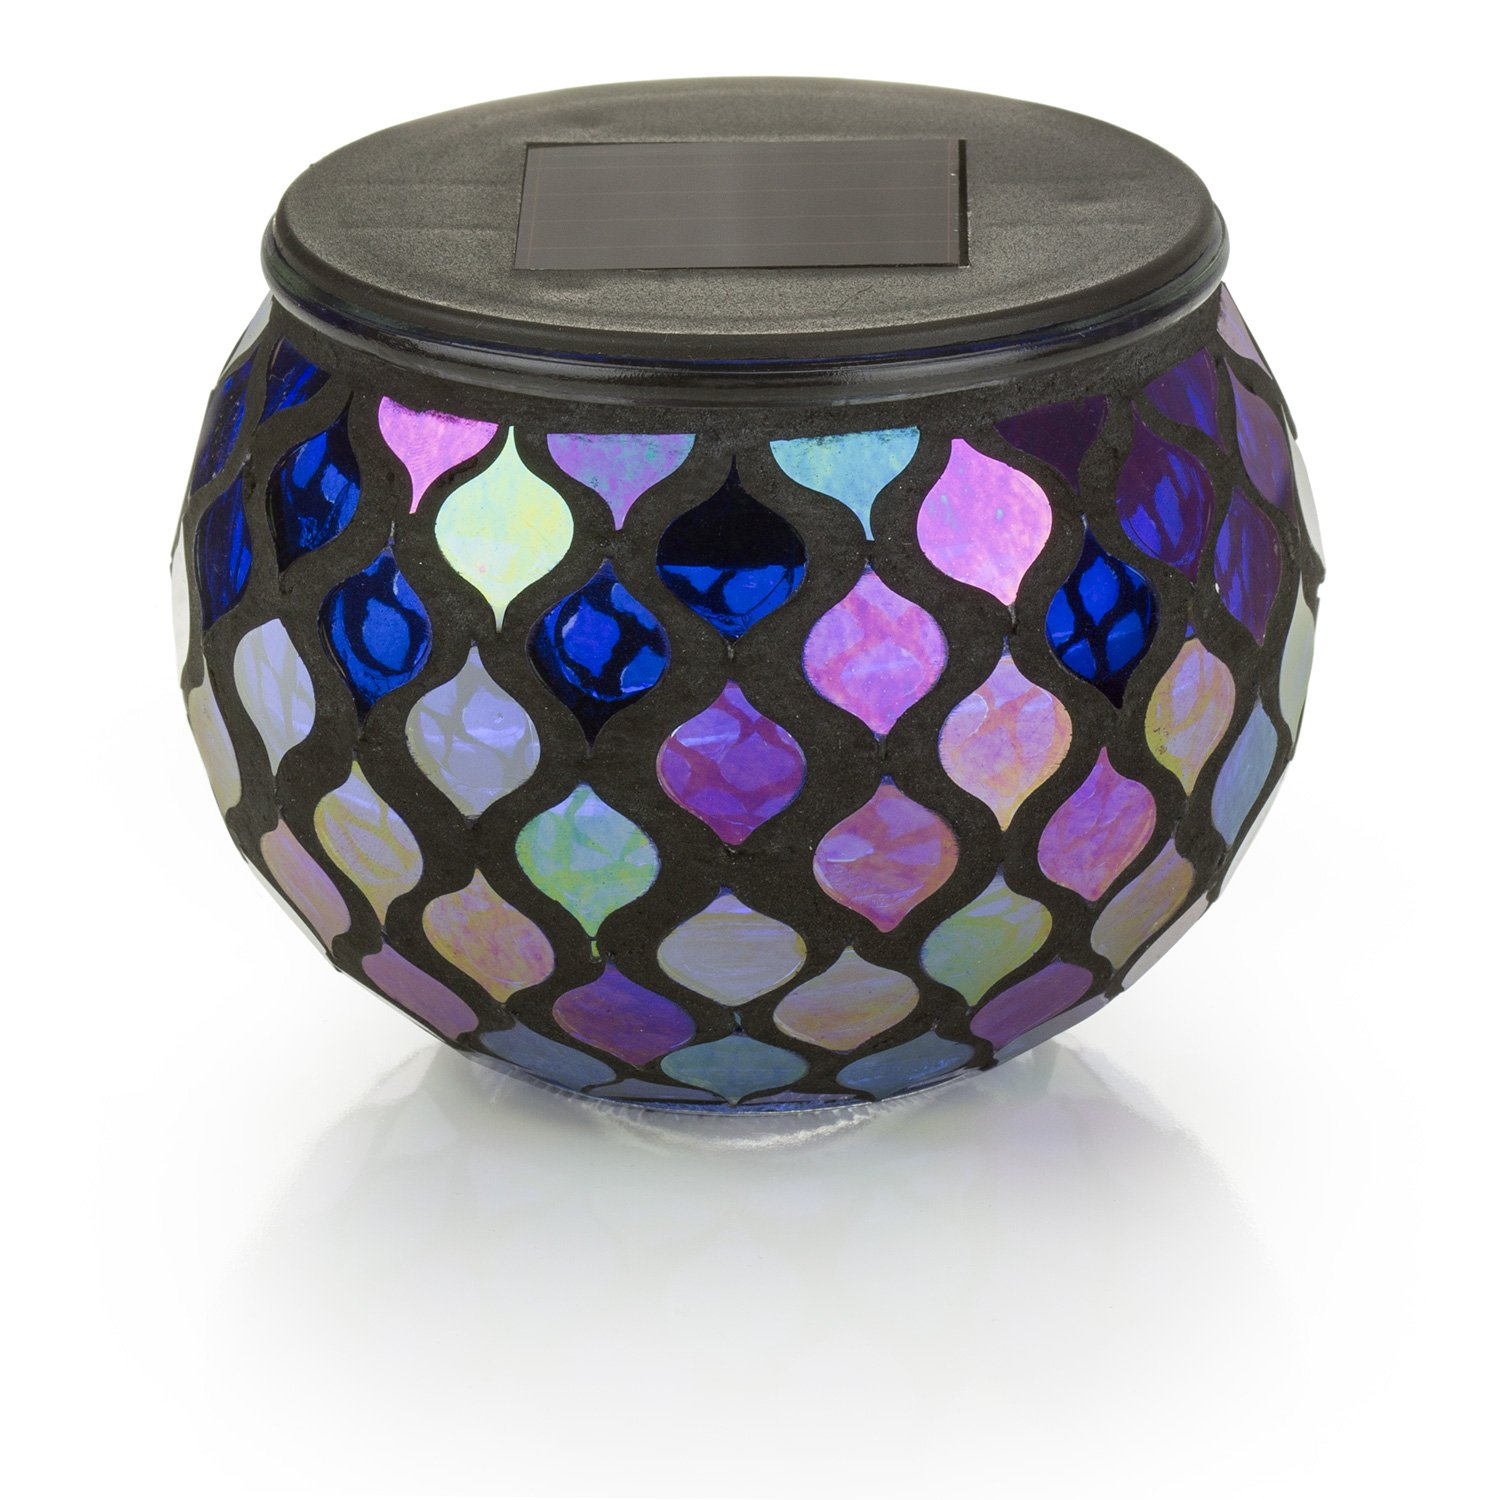 Solar Mosaic Glass LED Decorative Table Light (Iridescent Blue) by Dawhud Direct